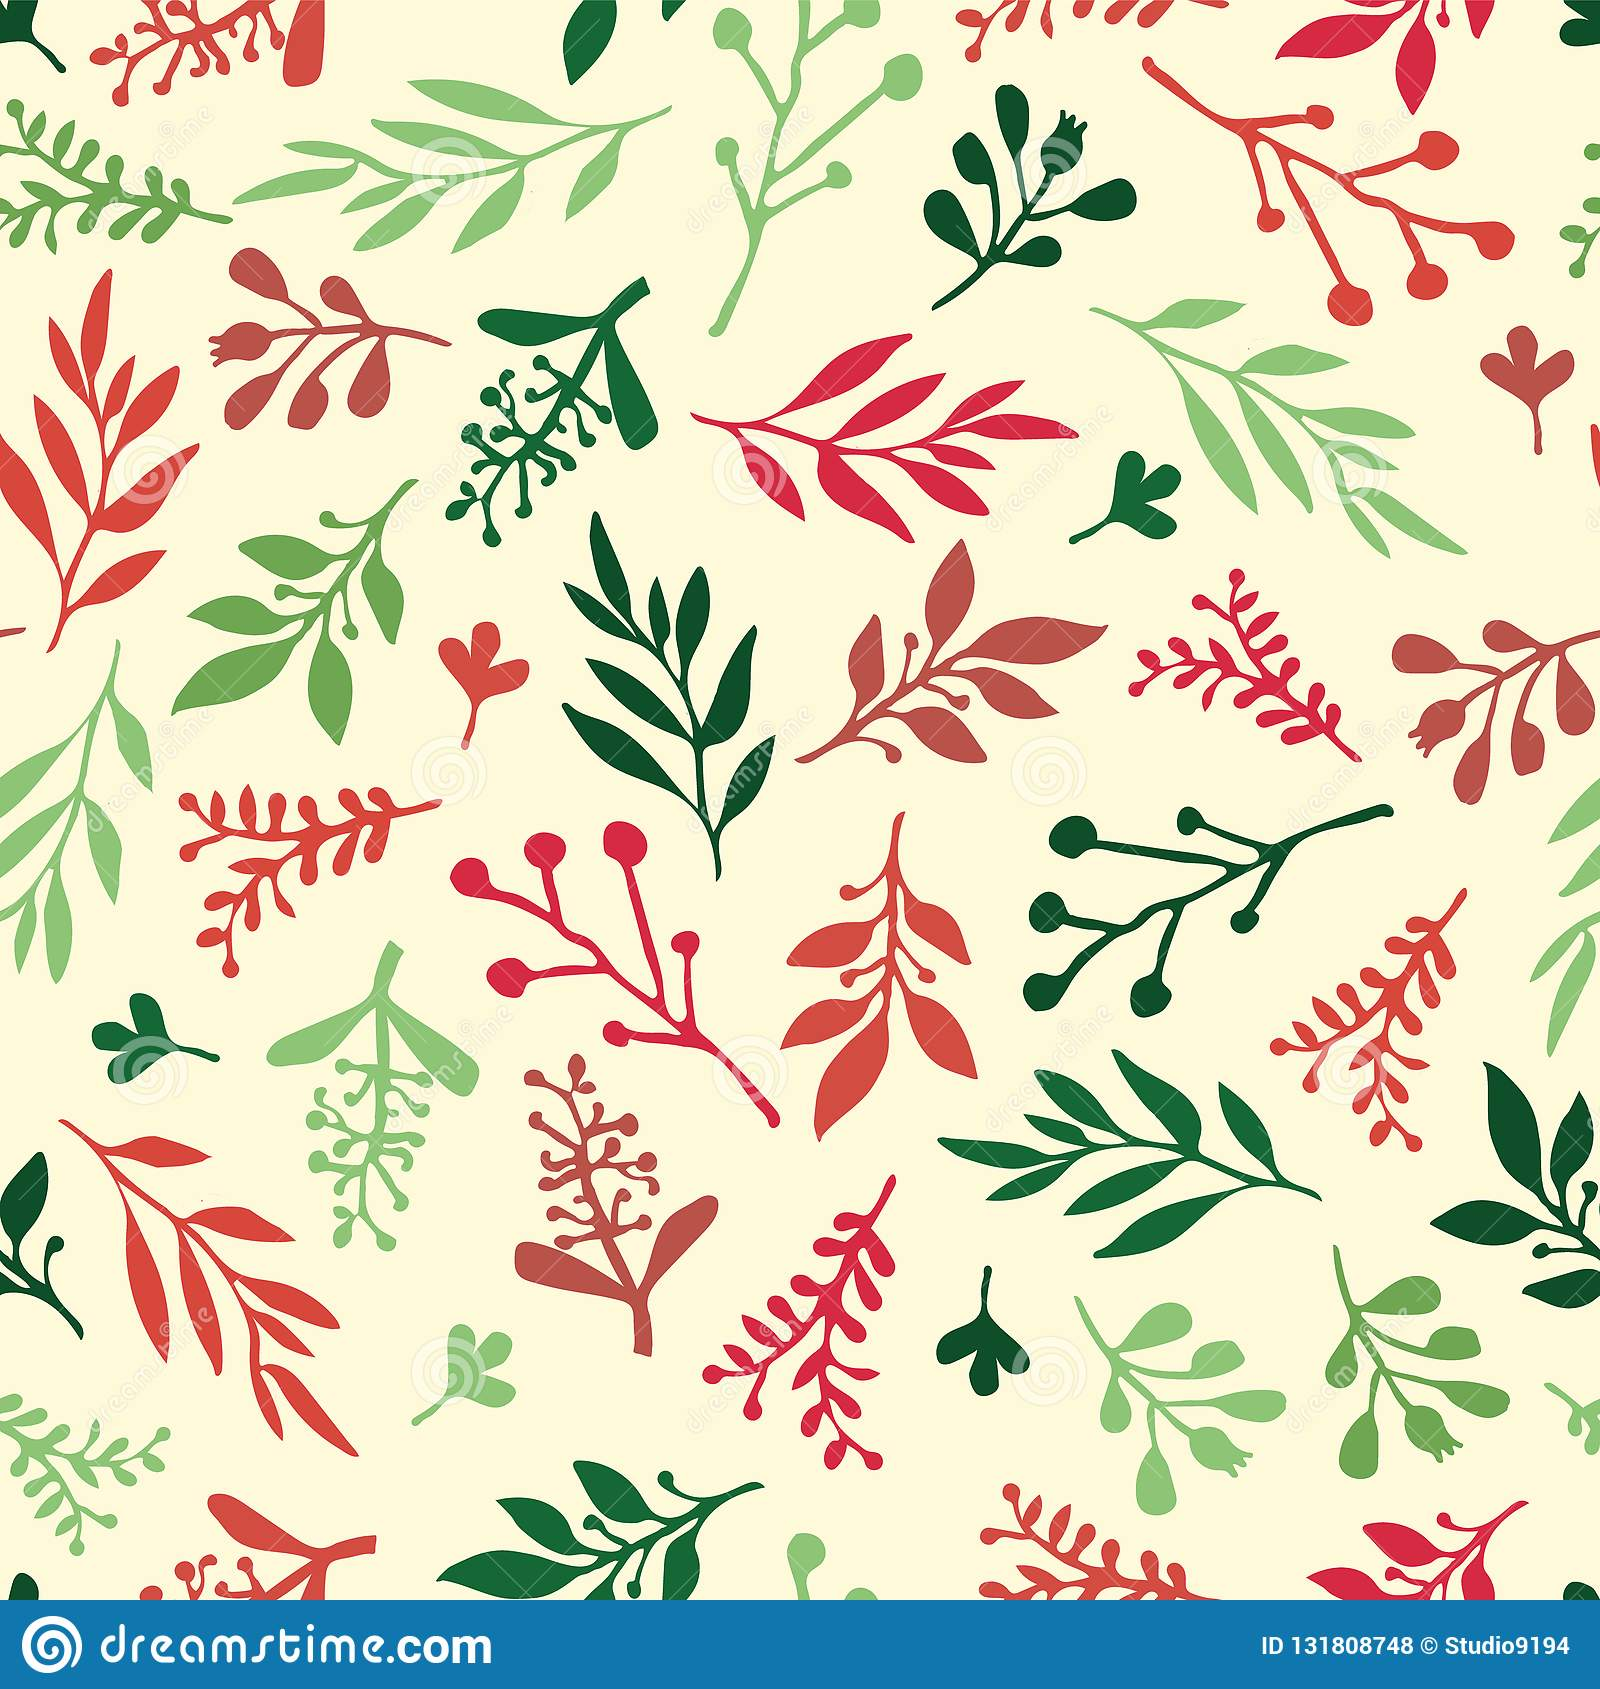 Seamless Holiday vector background with abstract leaves red, green, beige. Simple leaf texture, endless foliage pattern. Christmas